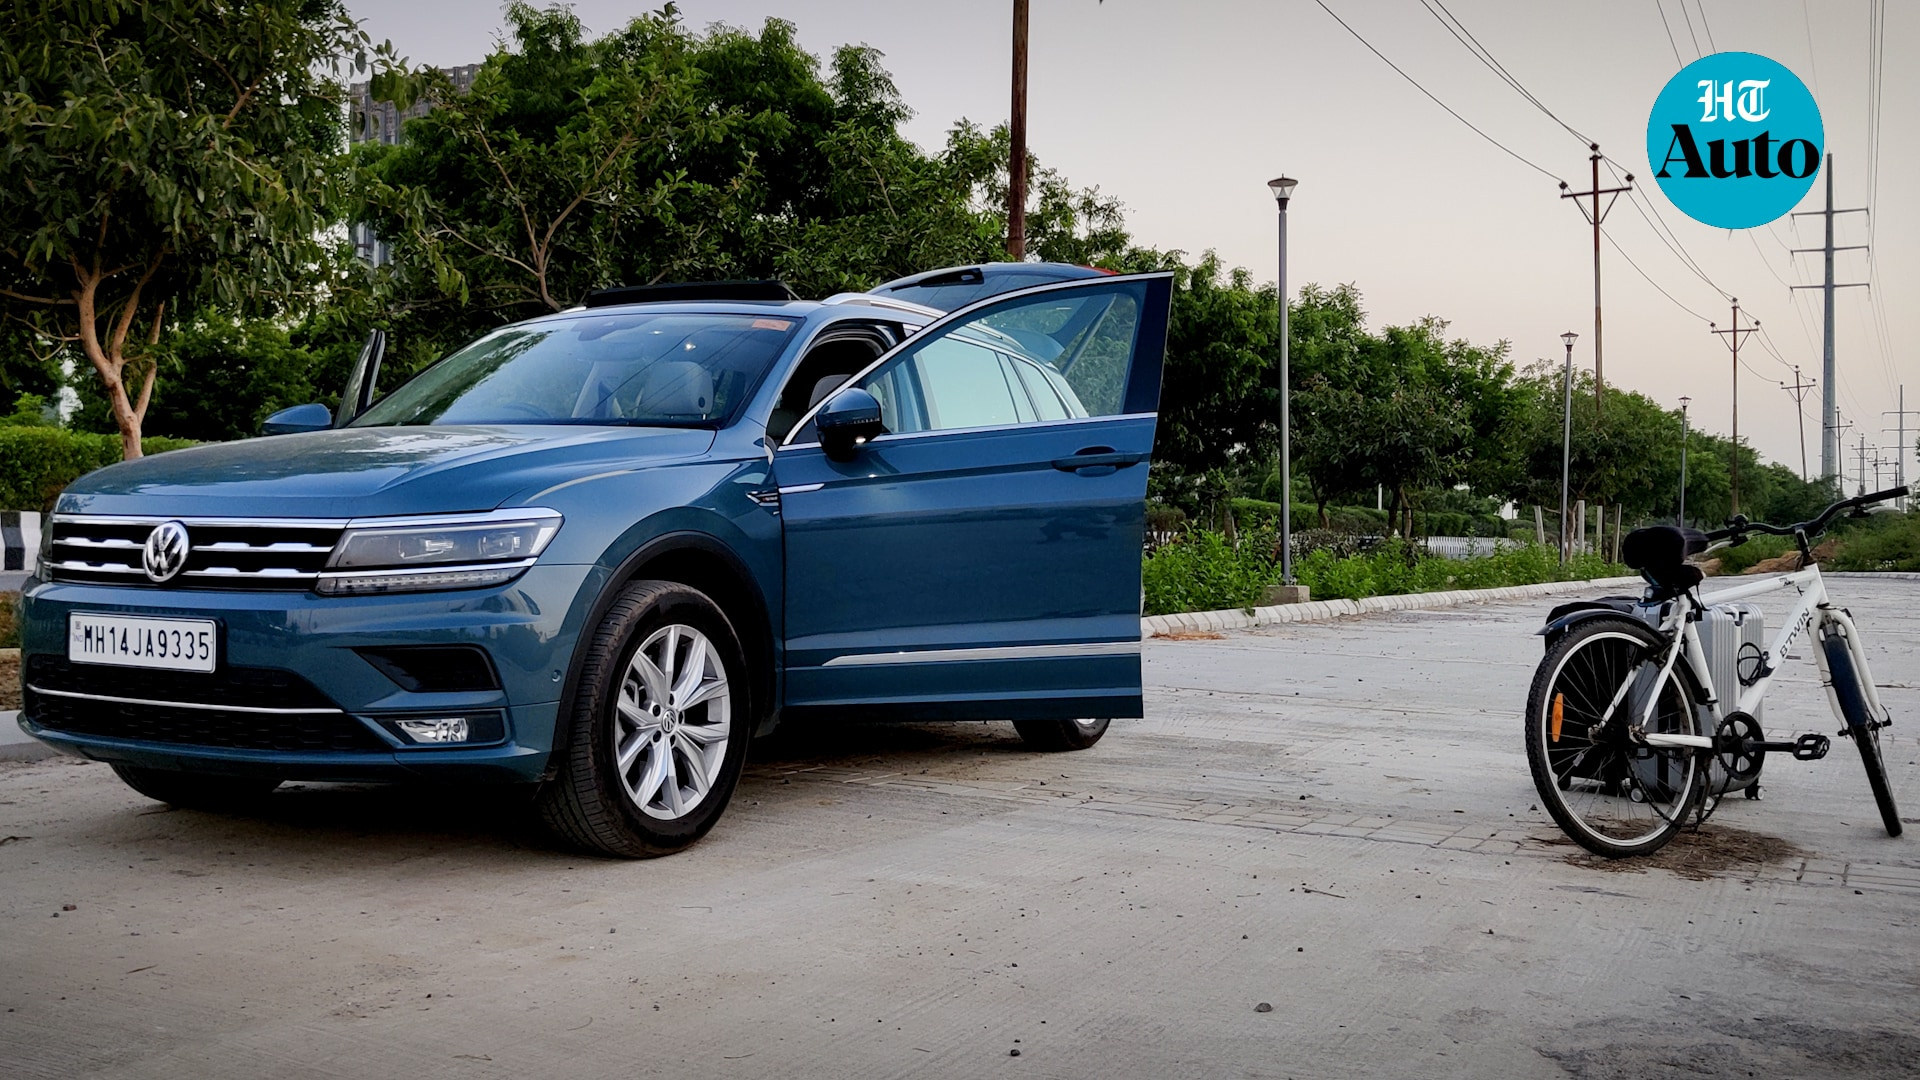 No inch has been spared in terms of safety by the German car makers. The Tiguan AllSpace comes with seven airbags, front and rear parking sensors, Tyre Pressure Monitoring System, Electronic Stabilisation Program (ESP) and Park Assist.